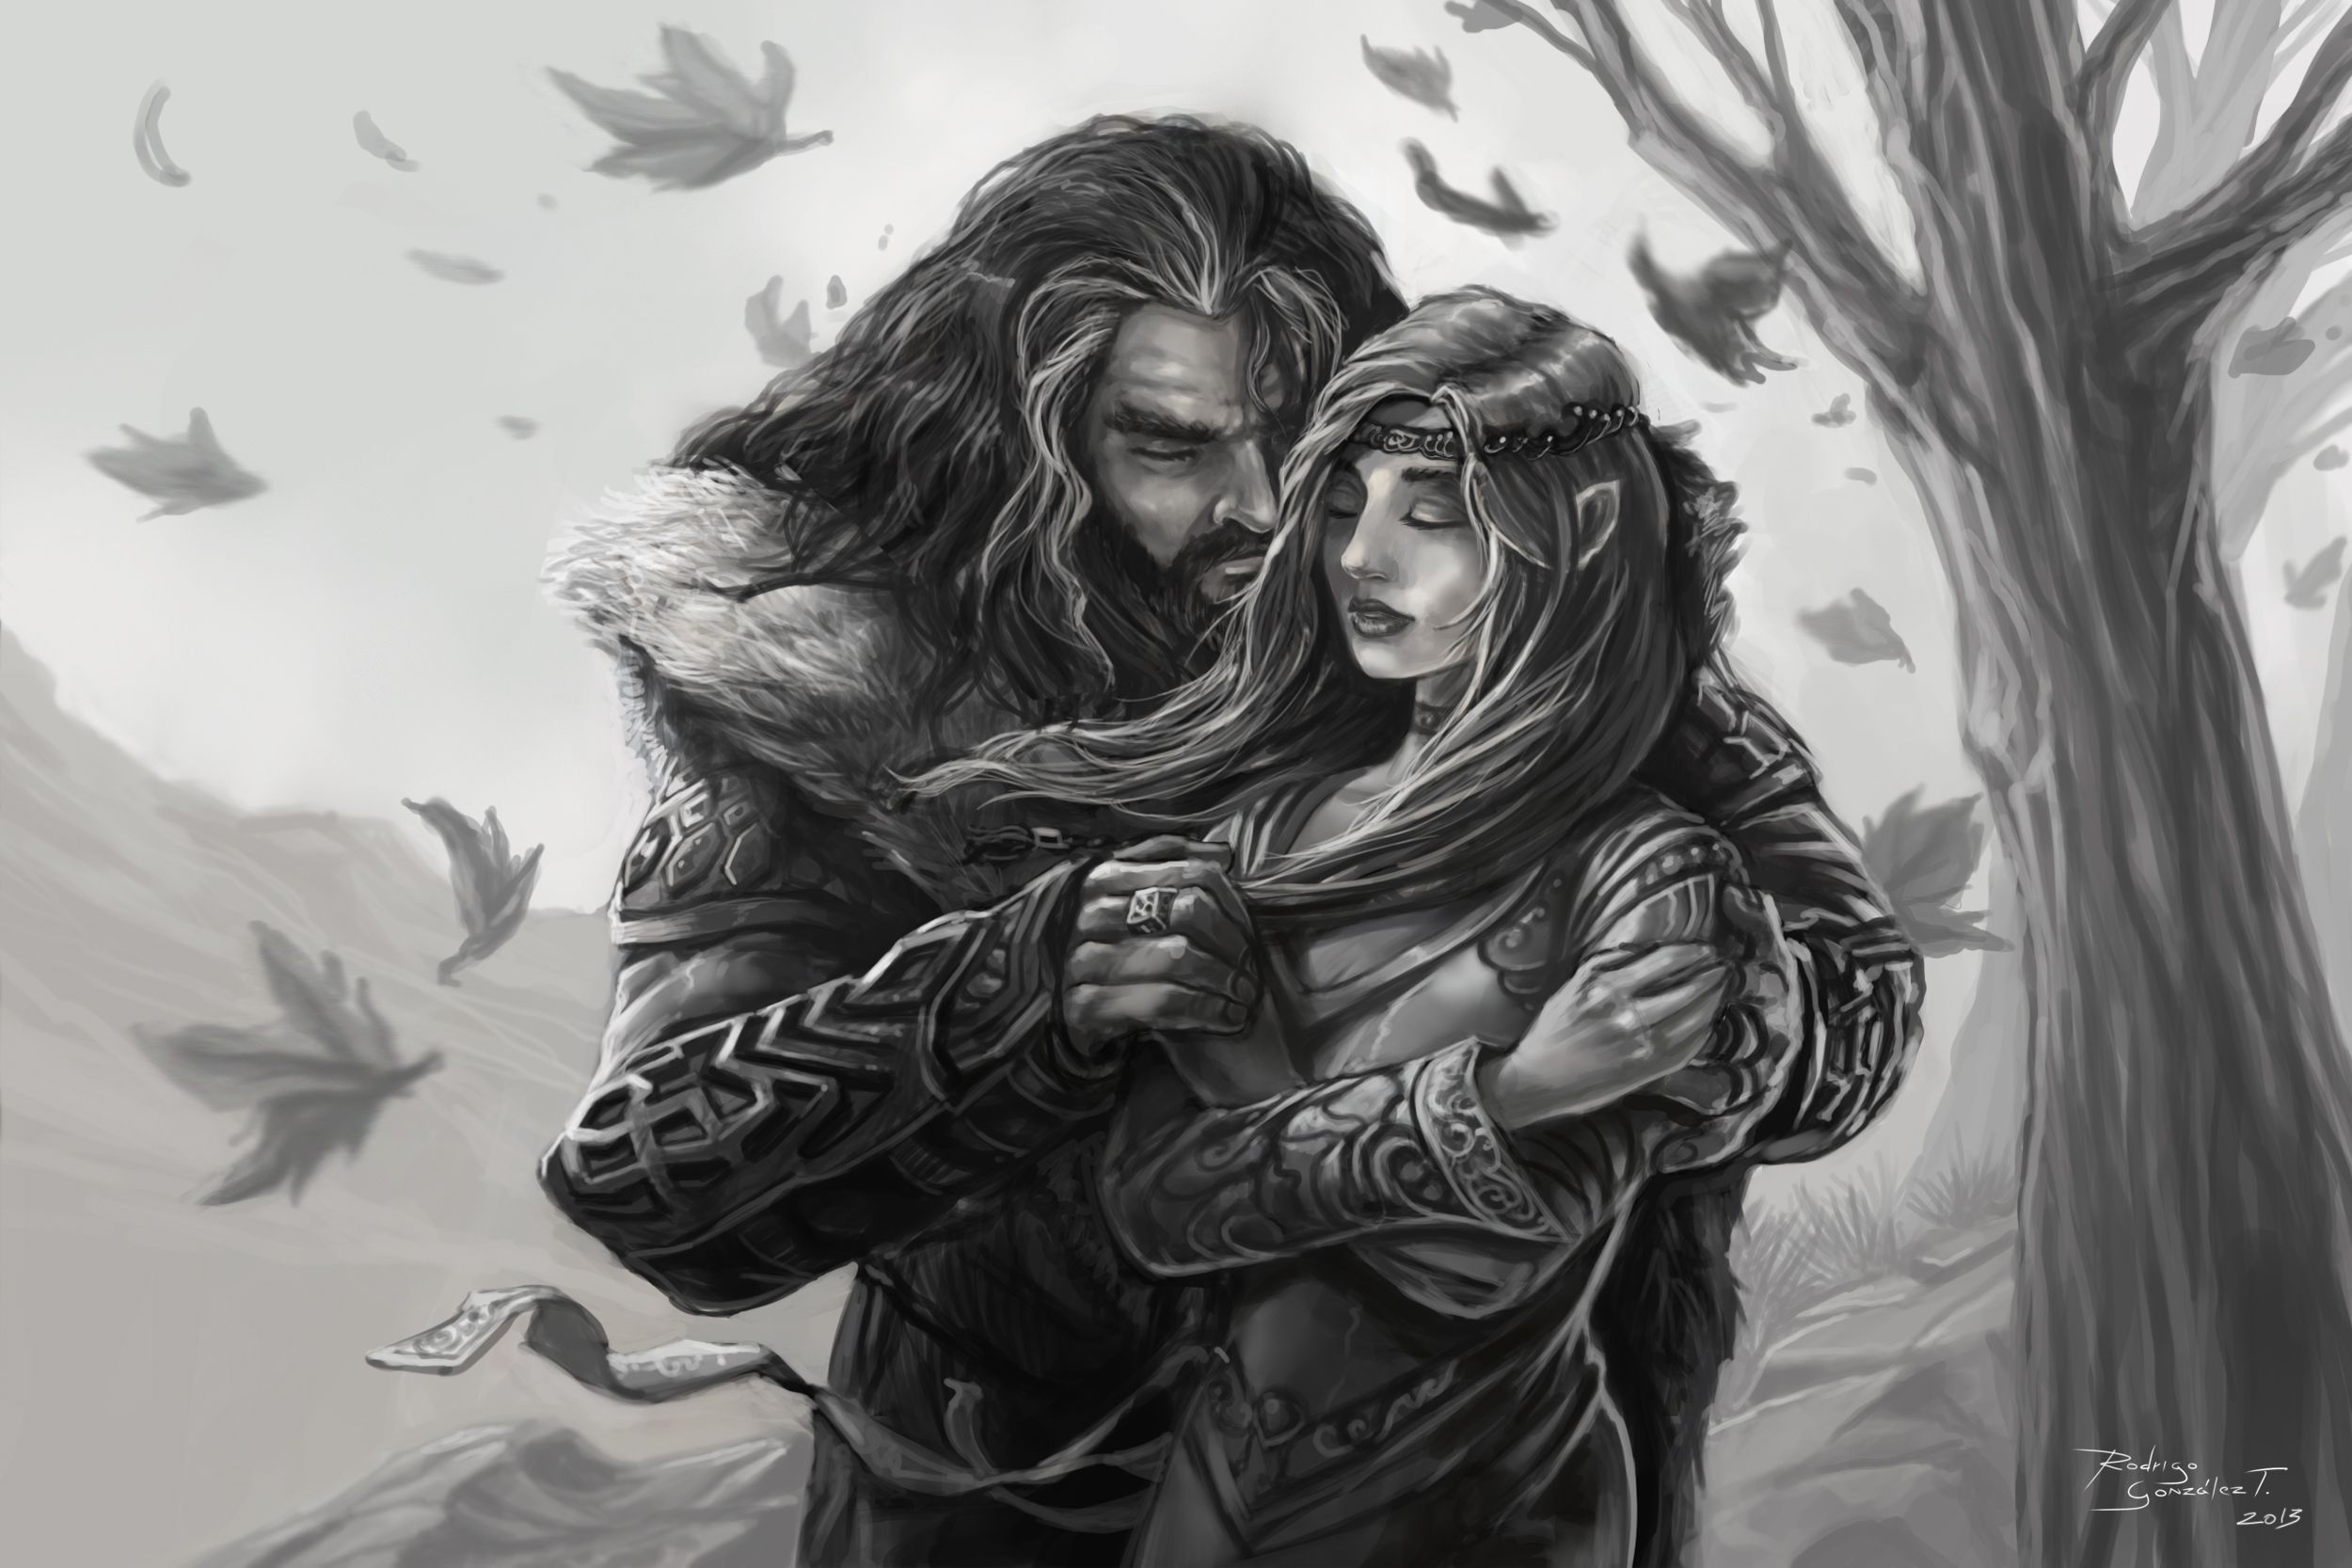 Thorin's Heart (for Laura) hope this makes you smile my